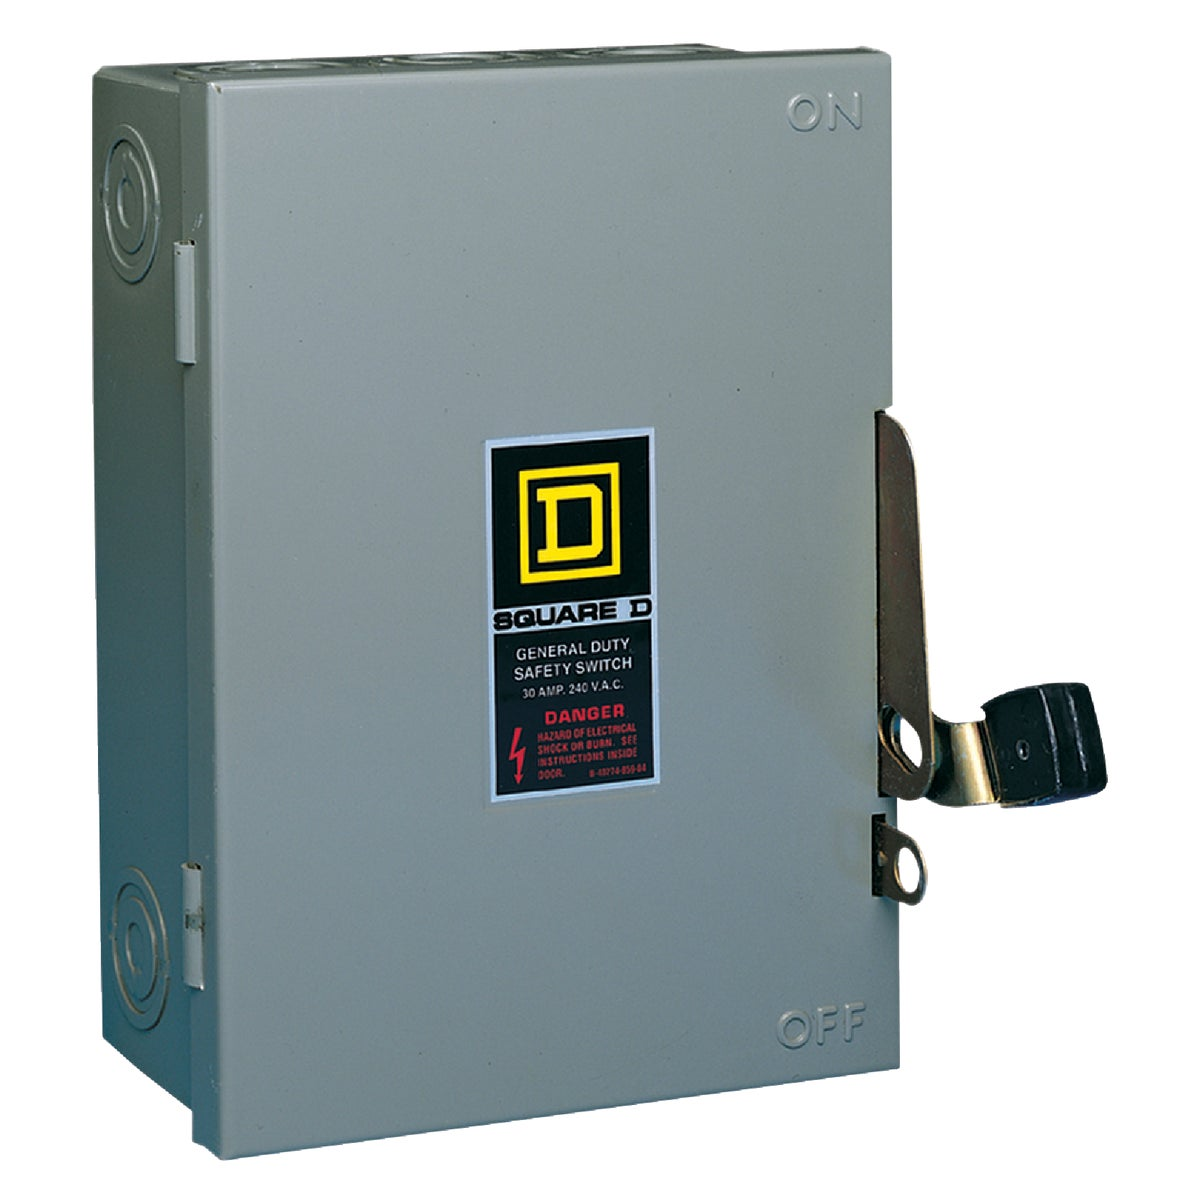 30A SAFETY SWITCH